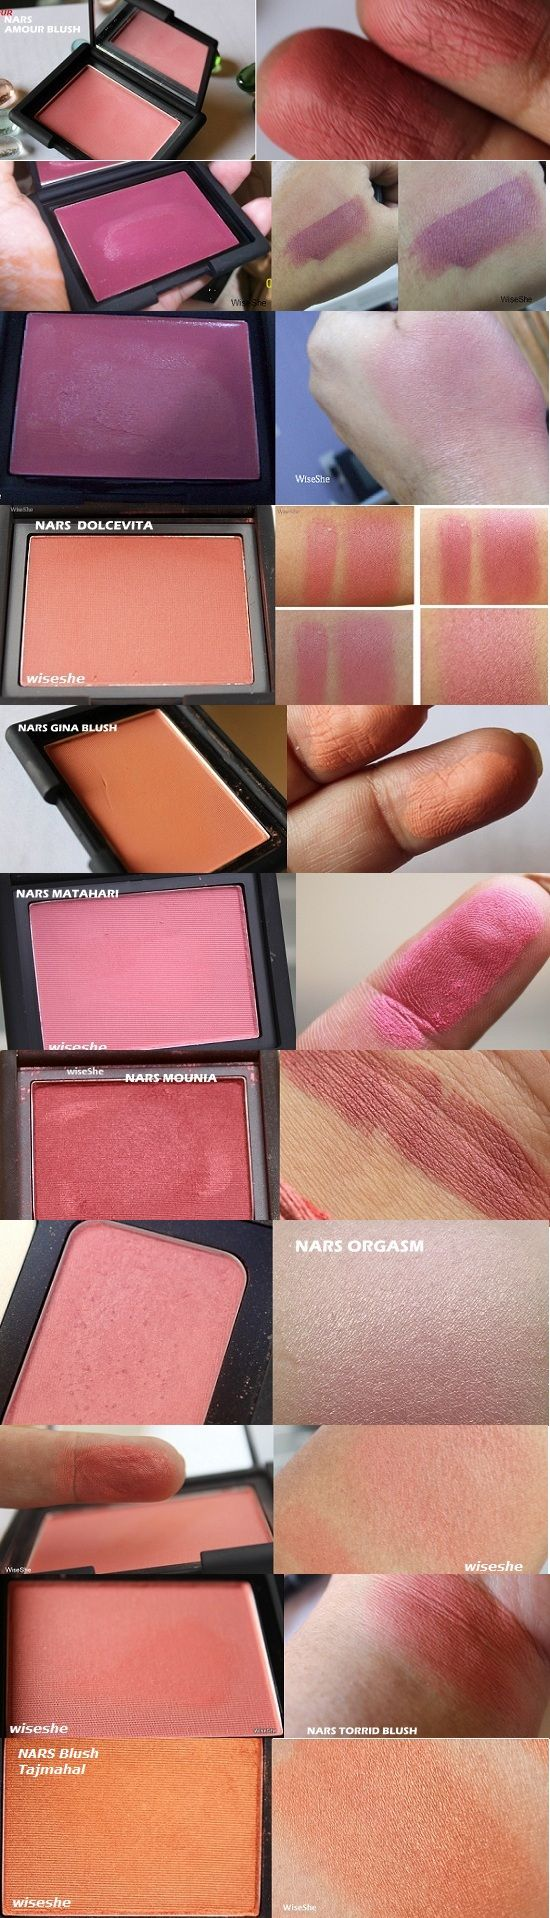 Best Nars blushes/Best Nars Blushes For Olive Skin tone